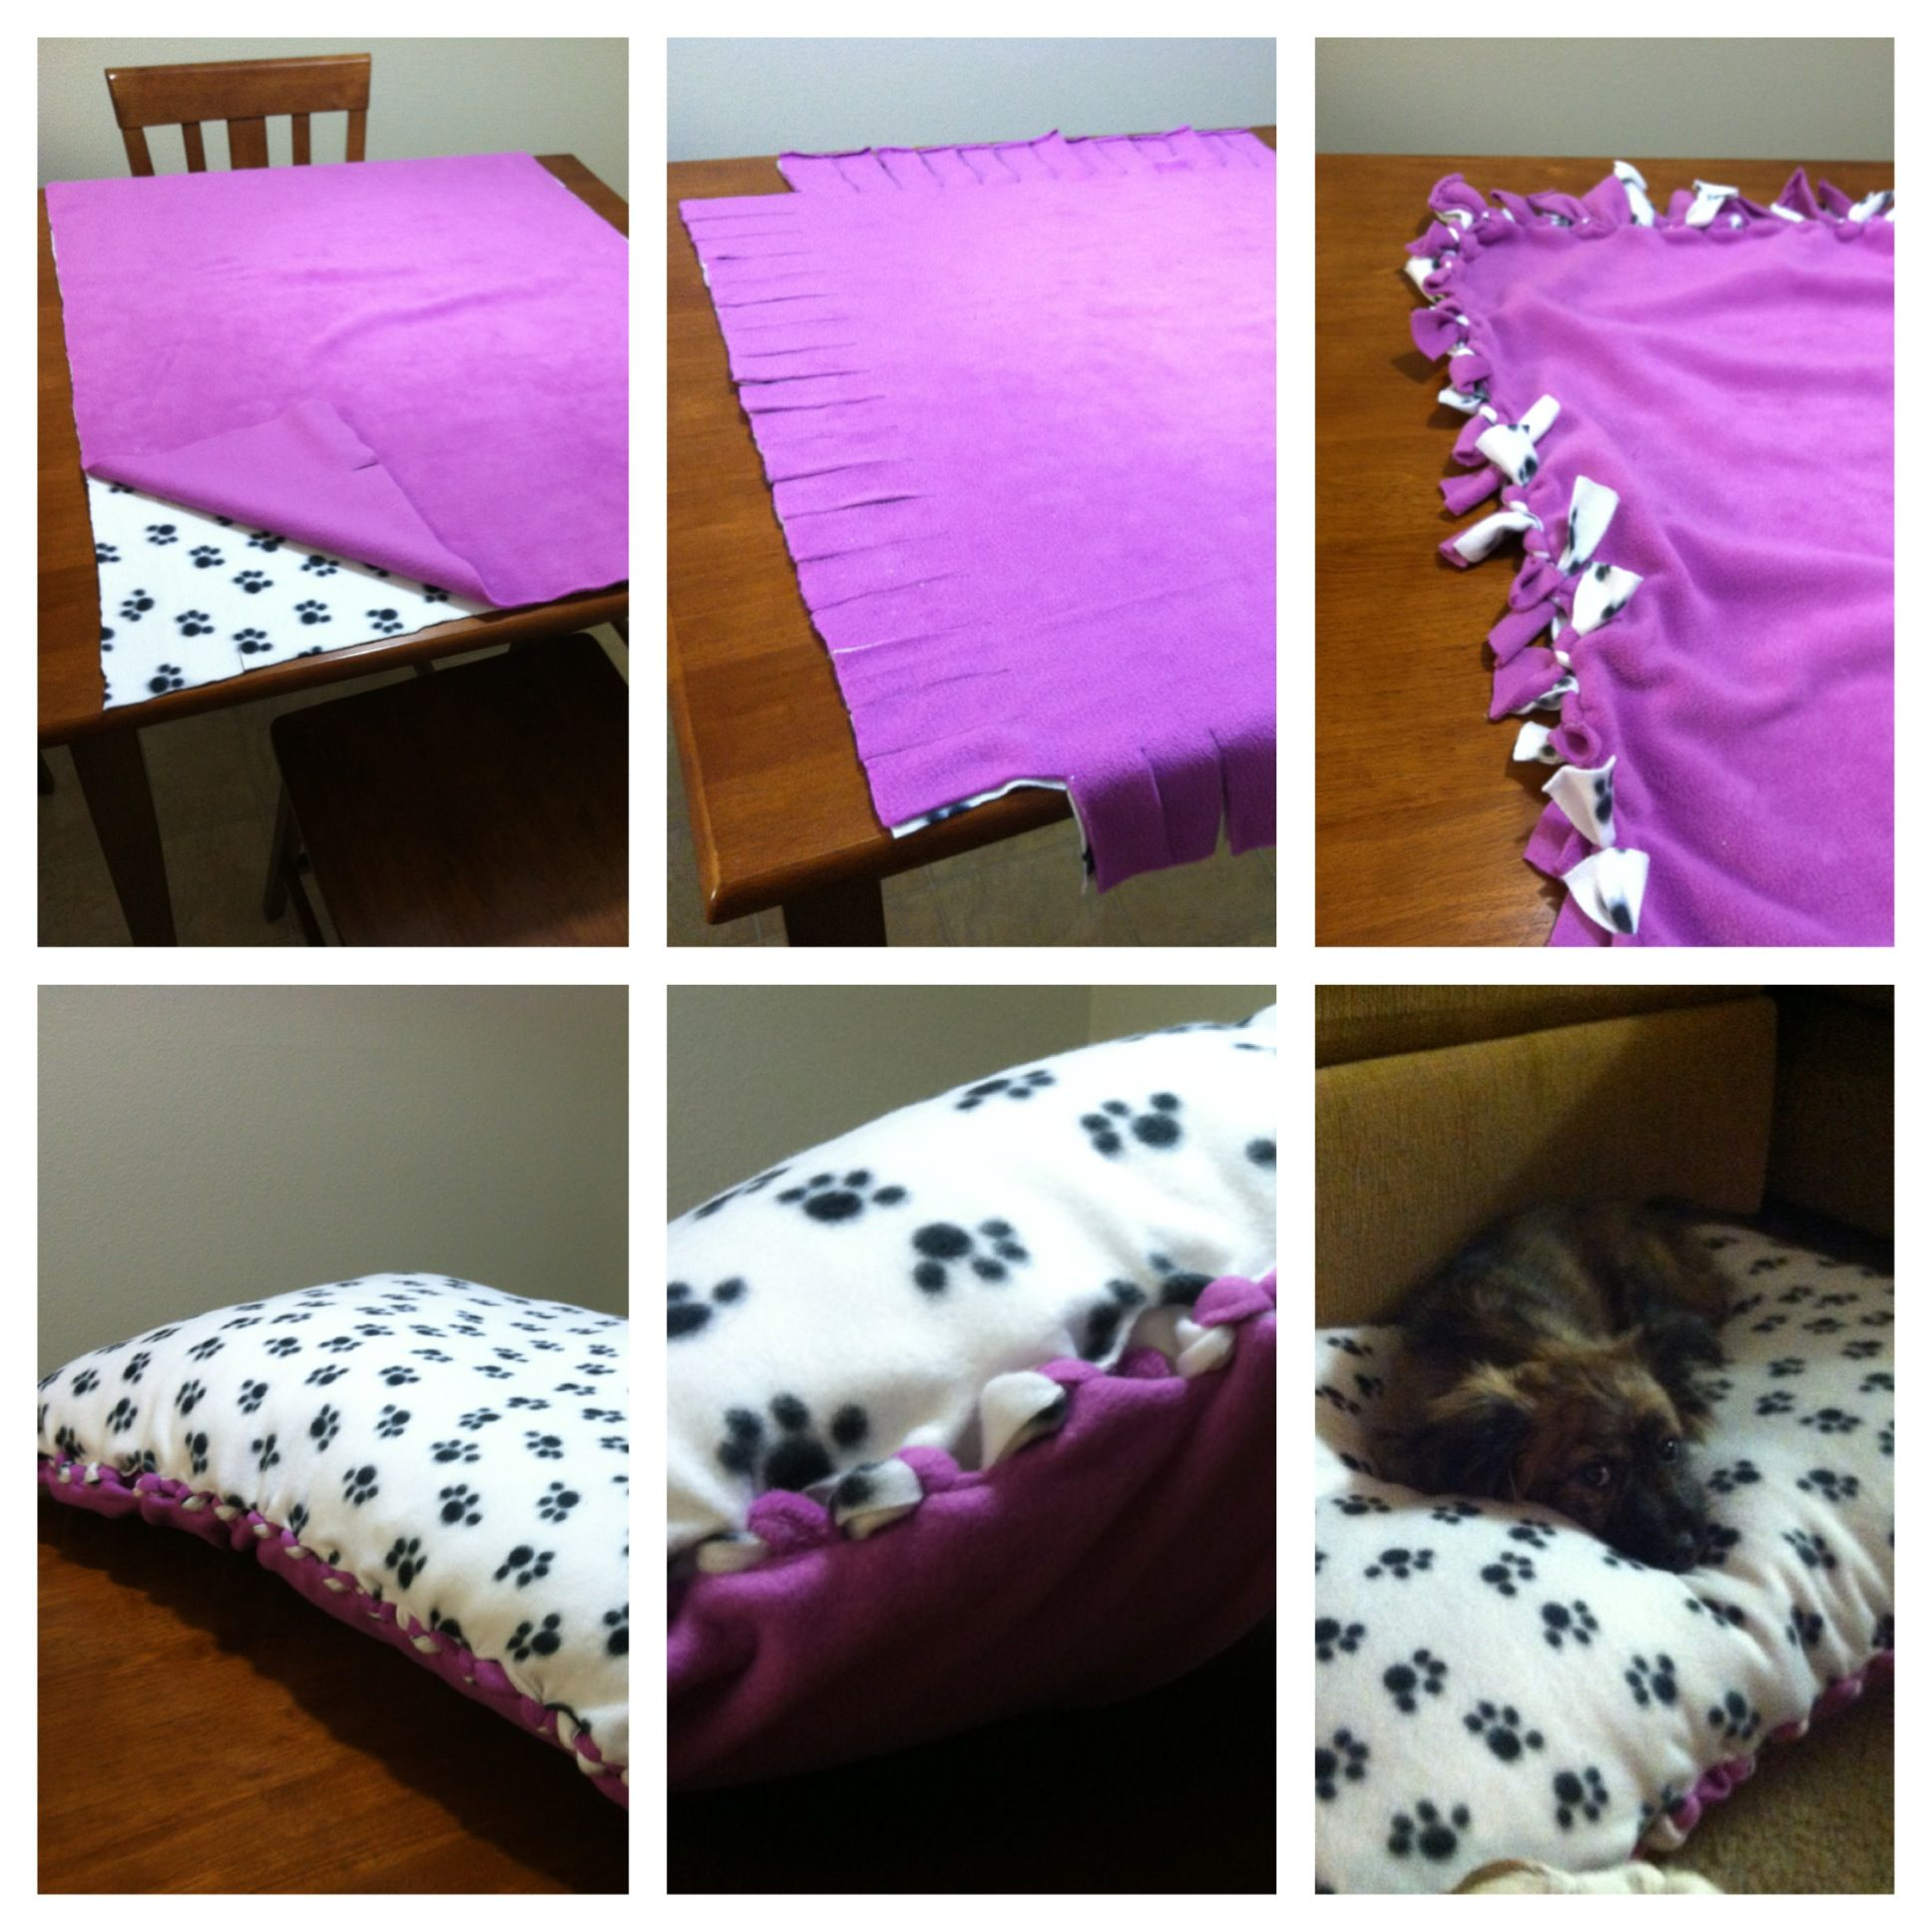 diy doggy bed with fringe inside, so the pup doesn't chew